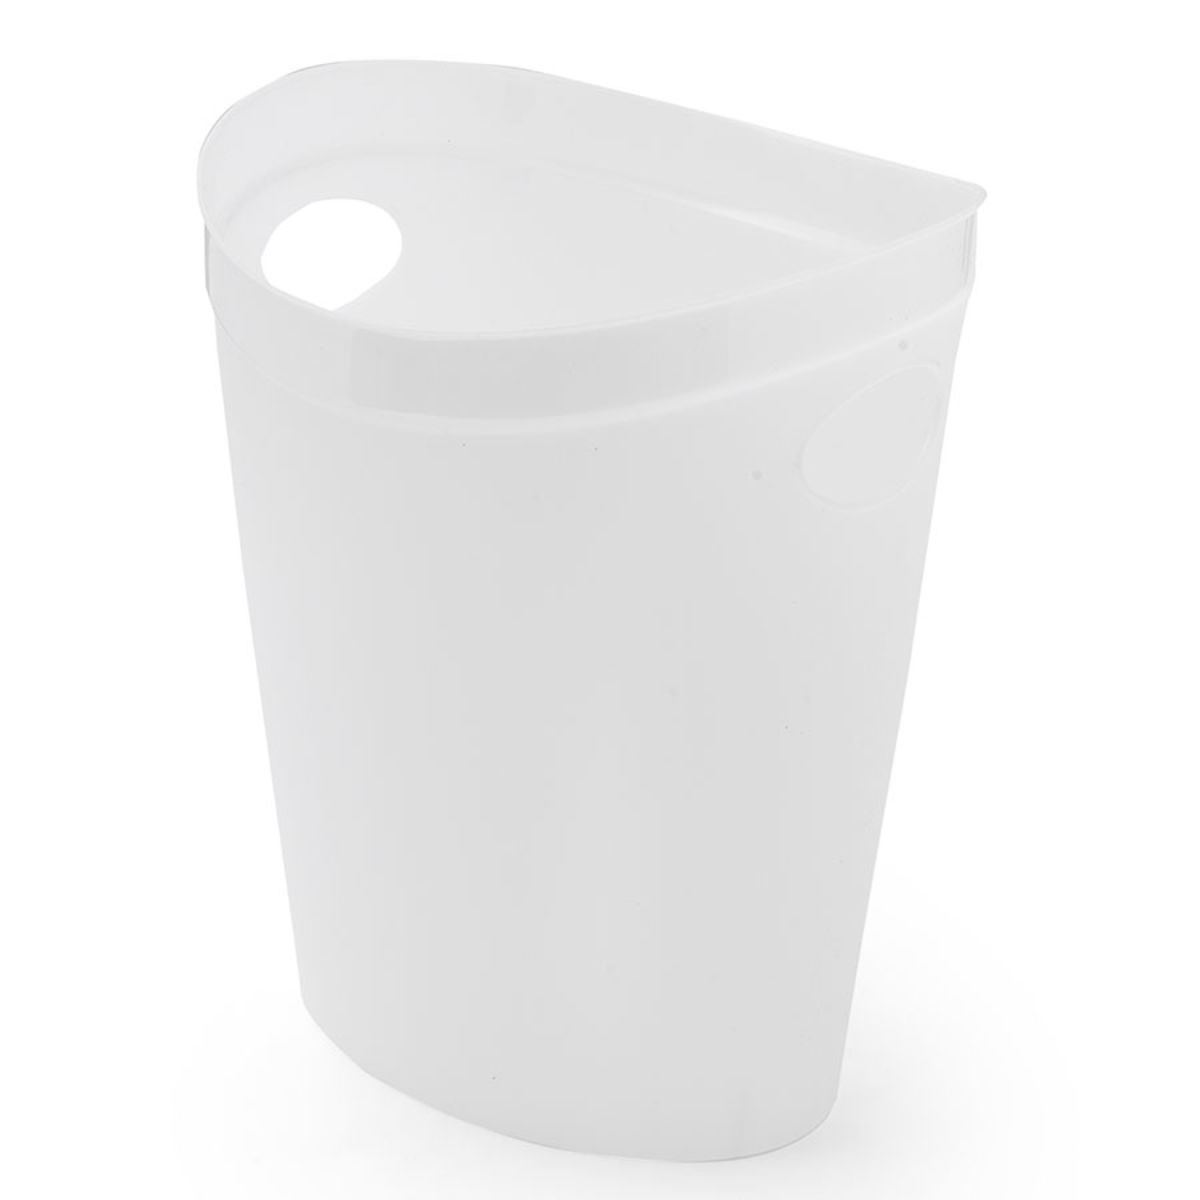 Addis Waste Paper Bin - White